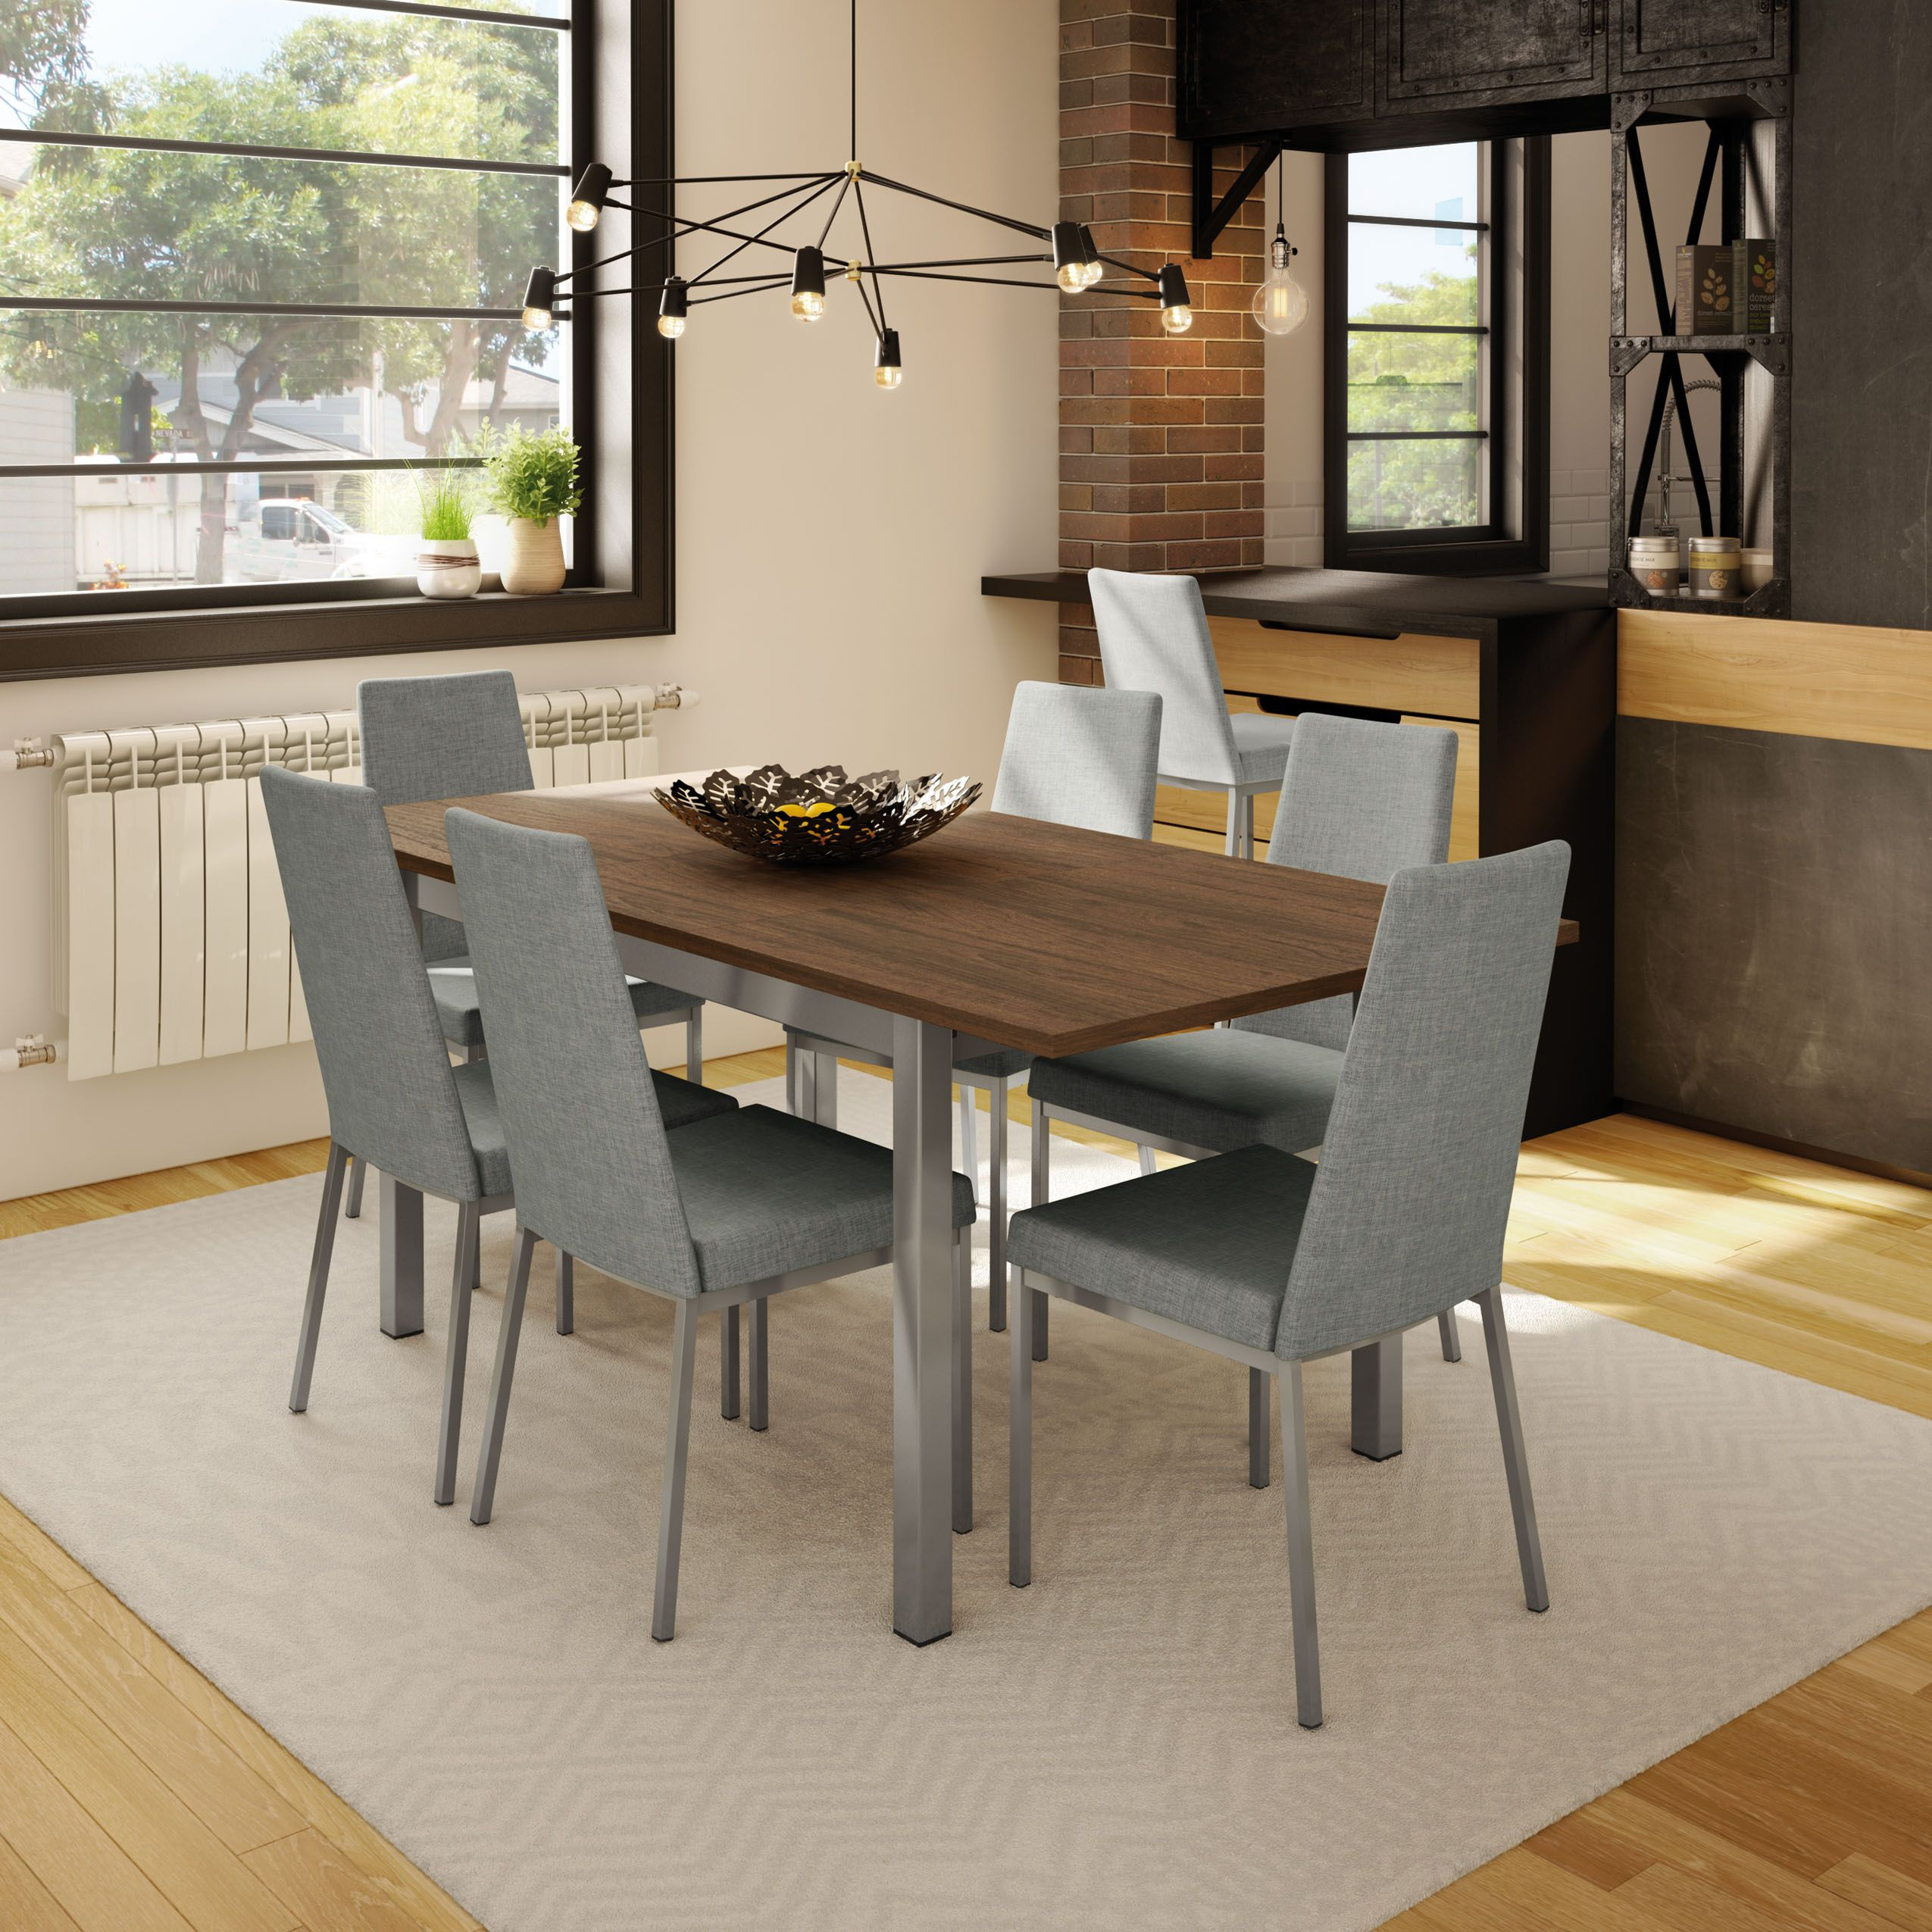 Urban Dining Chairs bedroom design quotes House Designer